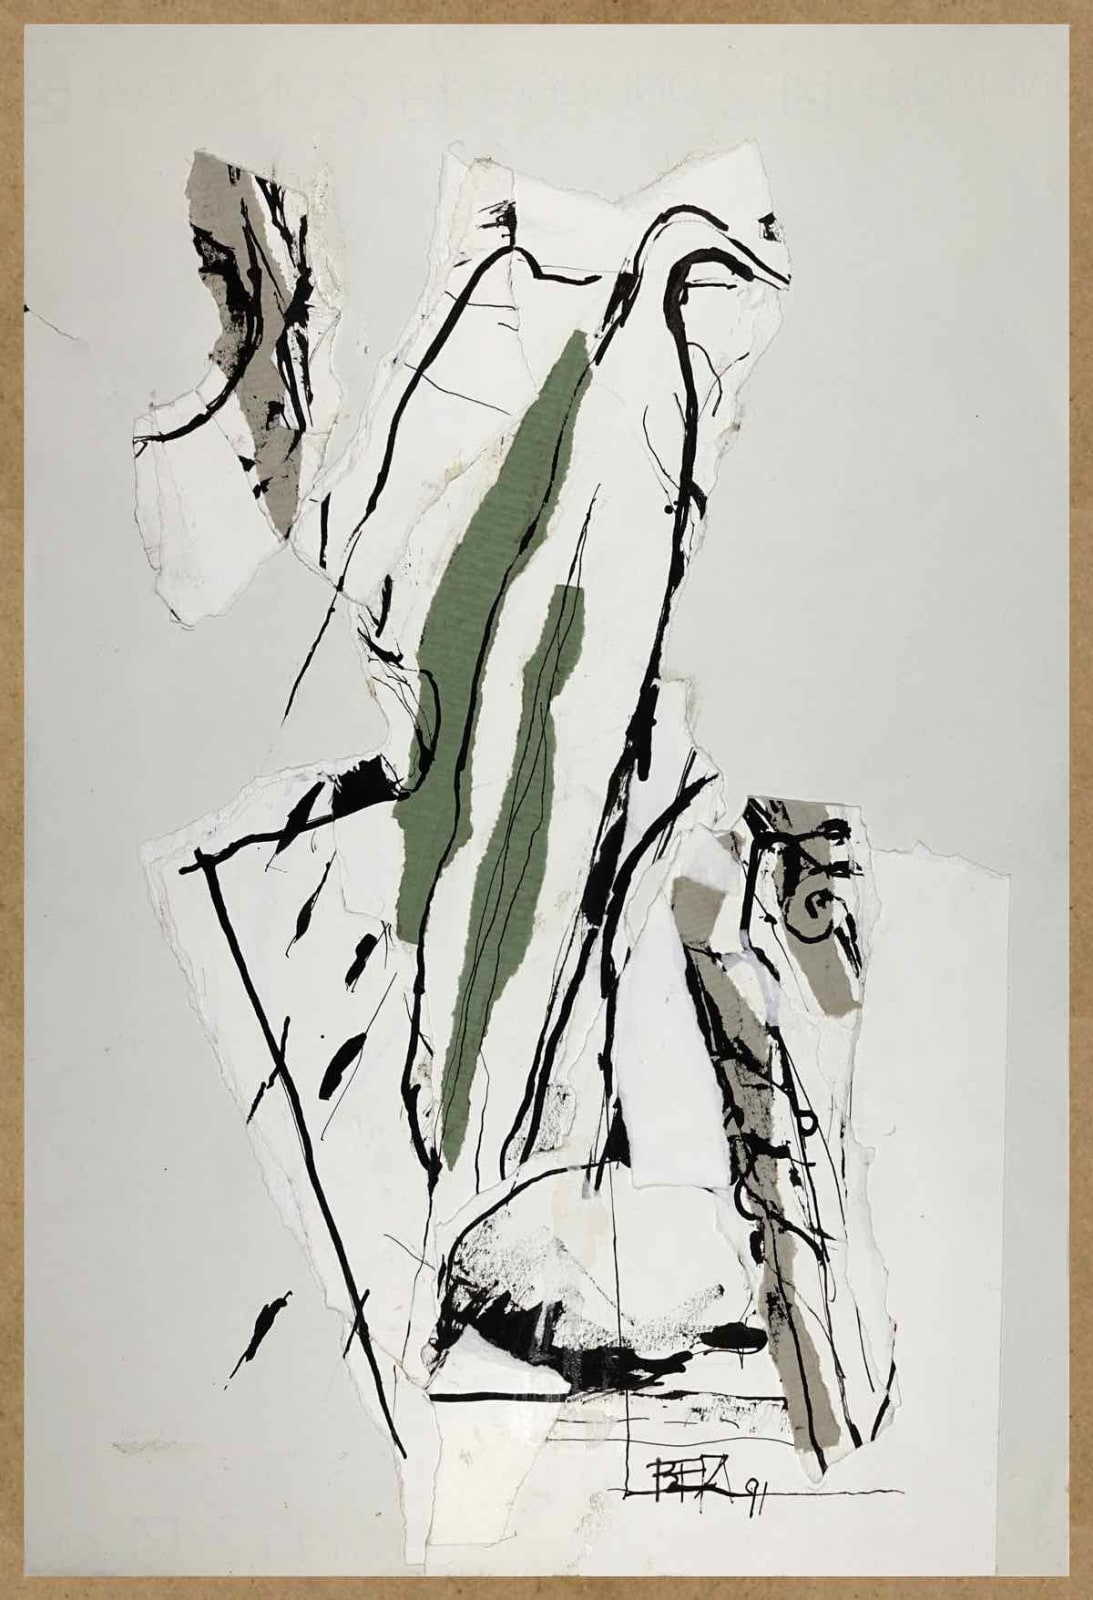 Bert Theis, Pays sage IV, 1991, Drawing, crayon on paper, 48 x 33 cm Courtesy: BertTheis Archive & Erna Hecey Gallery